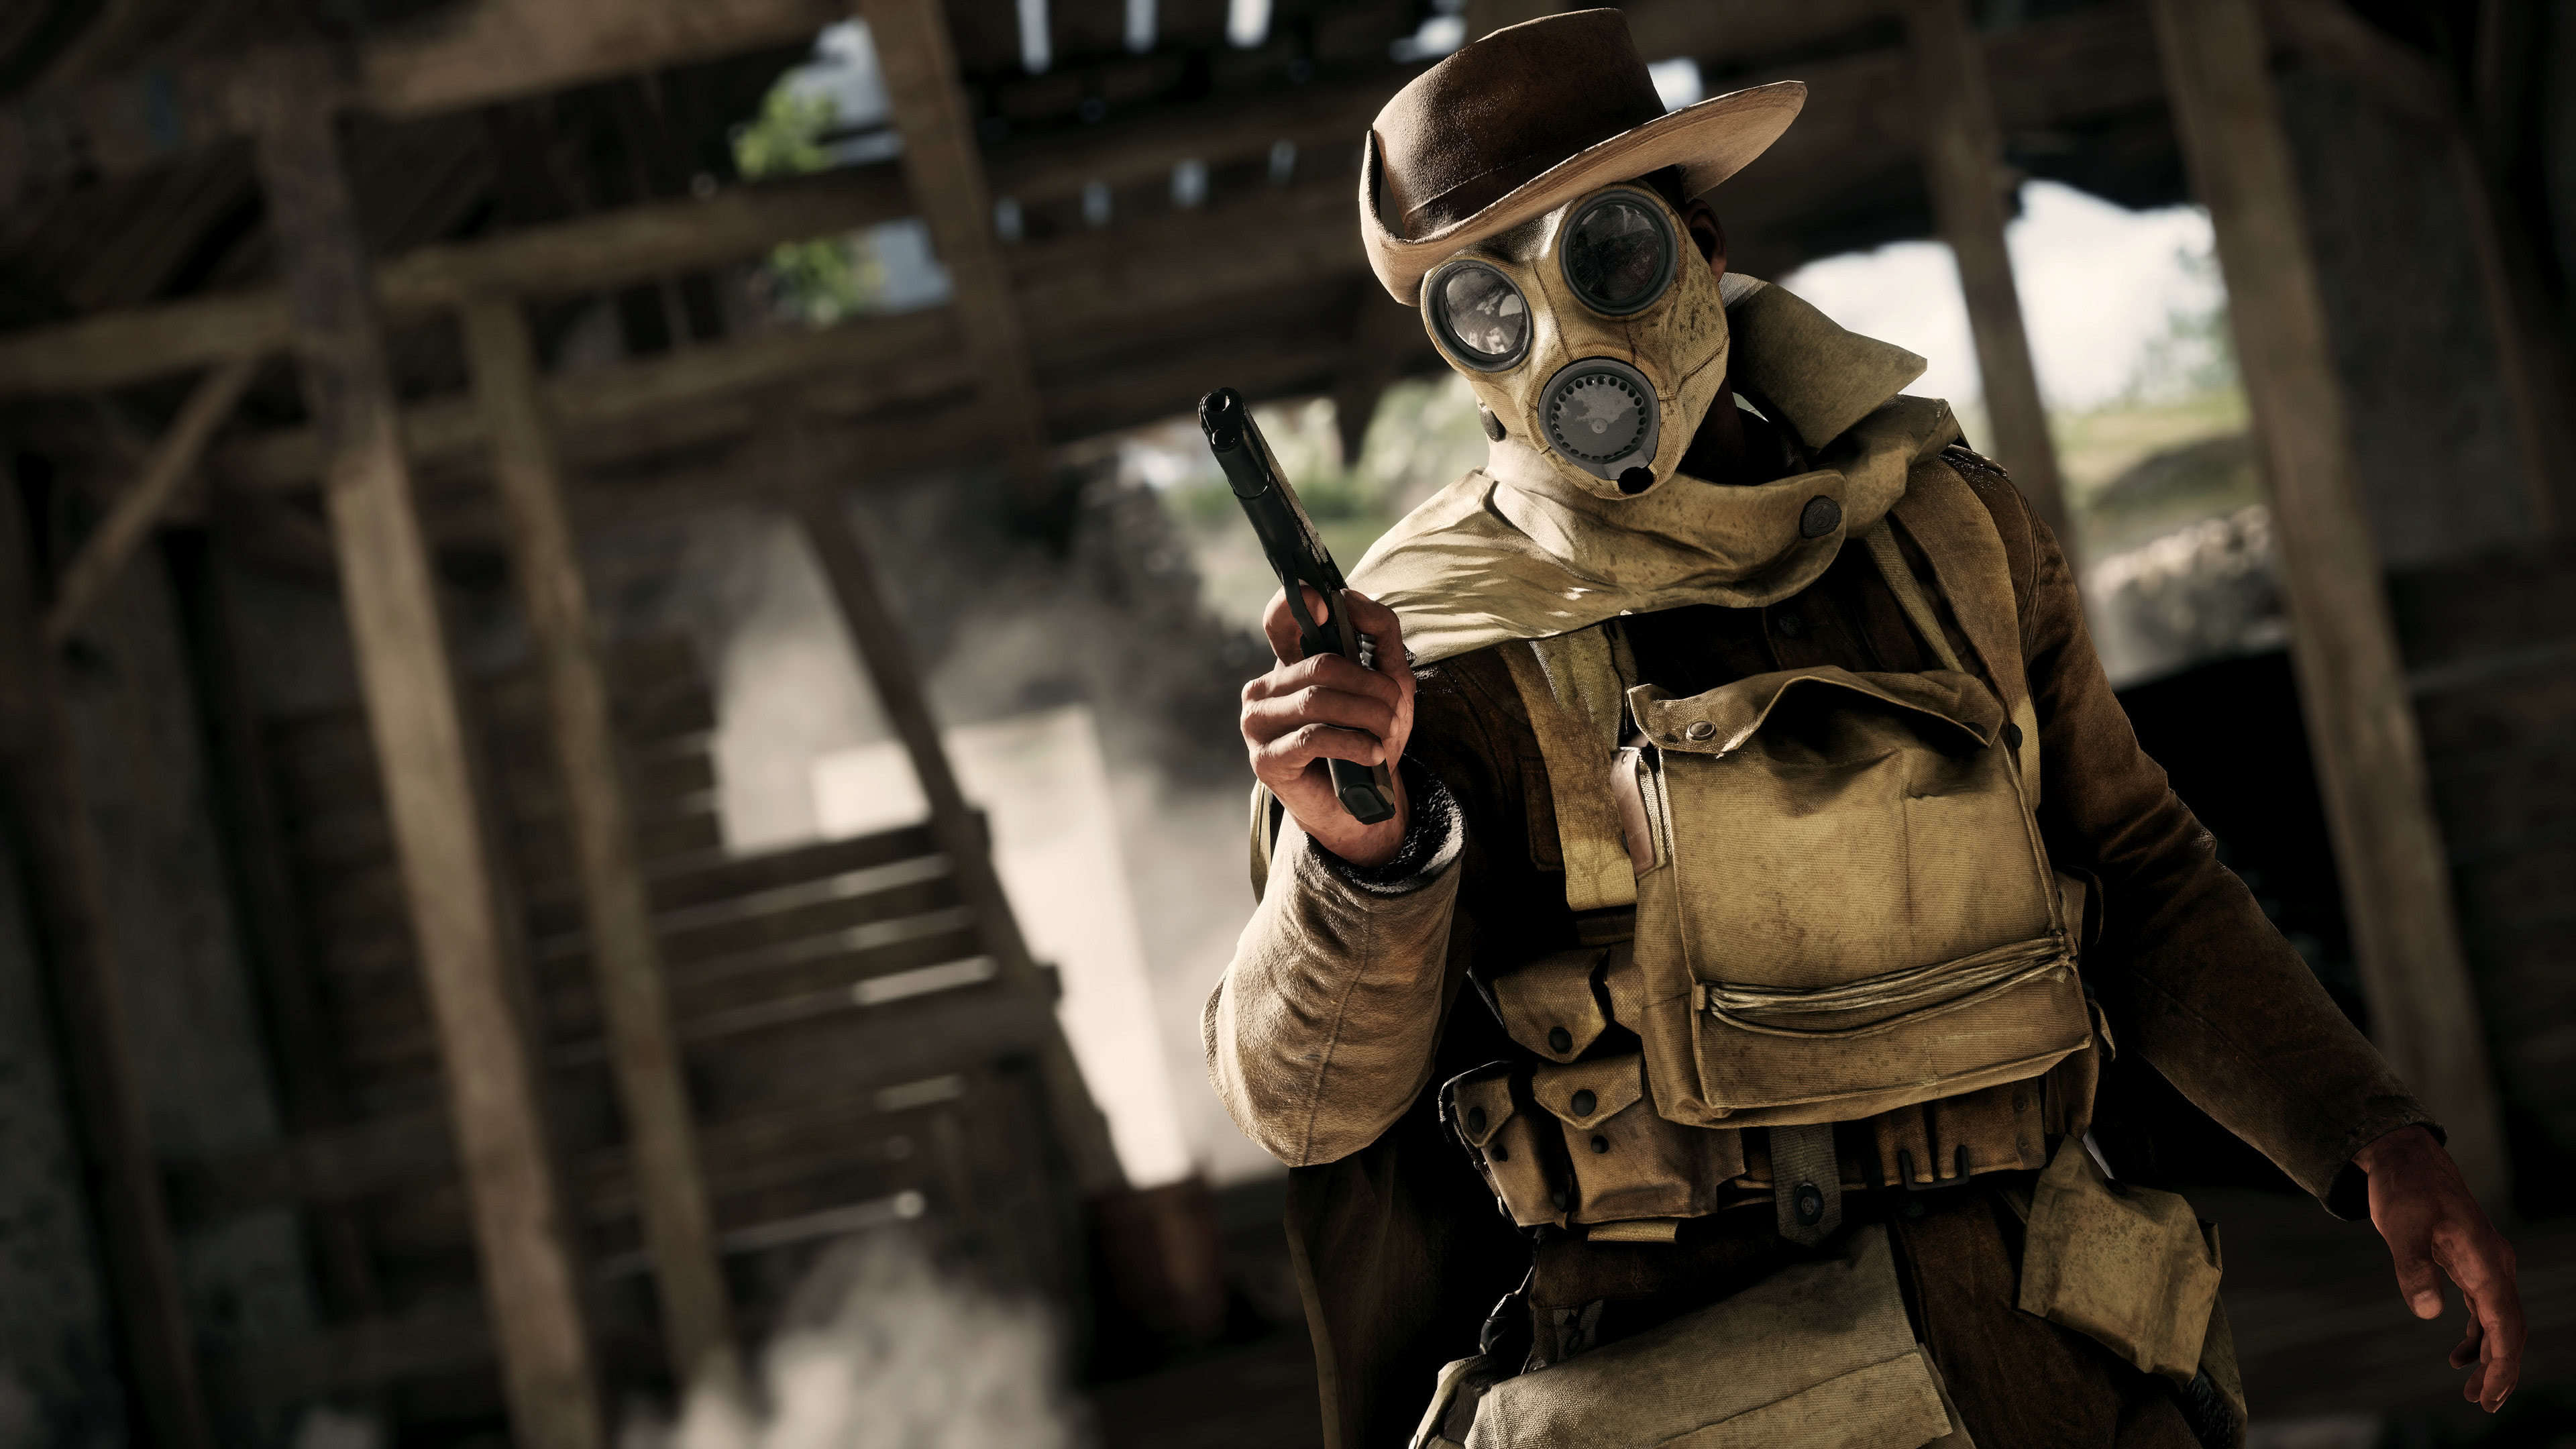 Battlefield 1 Soldier With Gas Mask UHD 4K Wallpaper